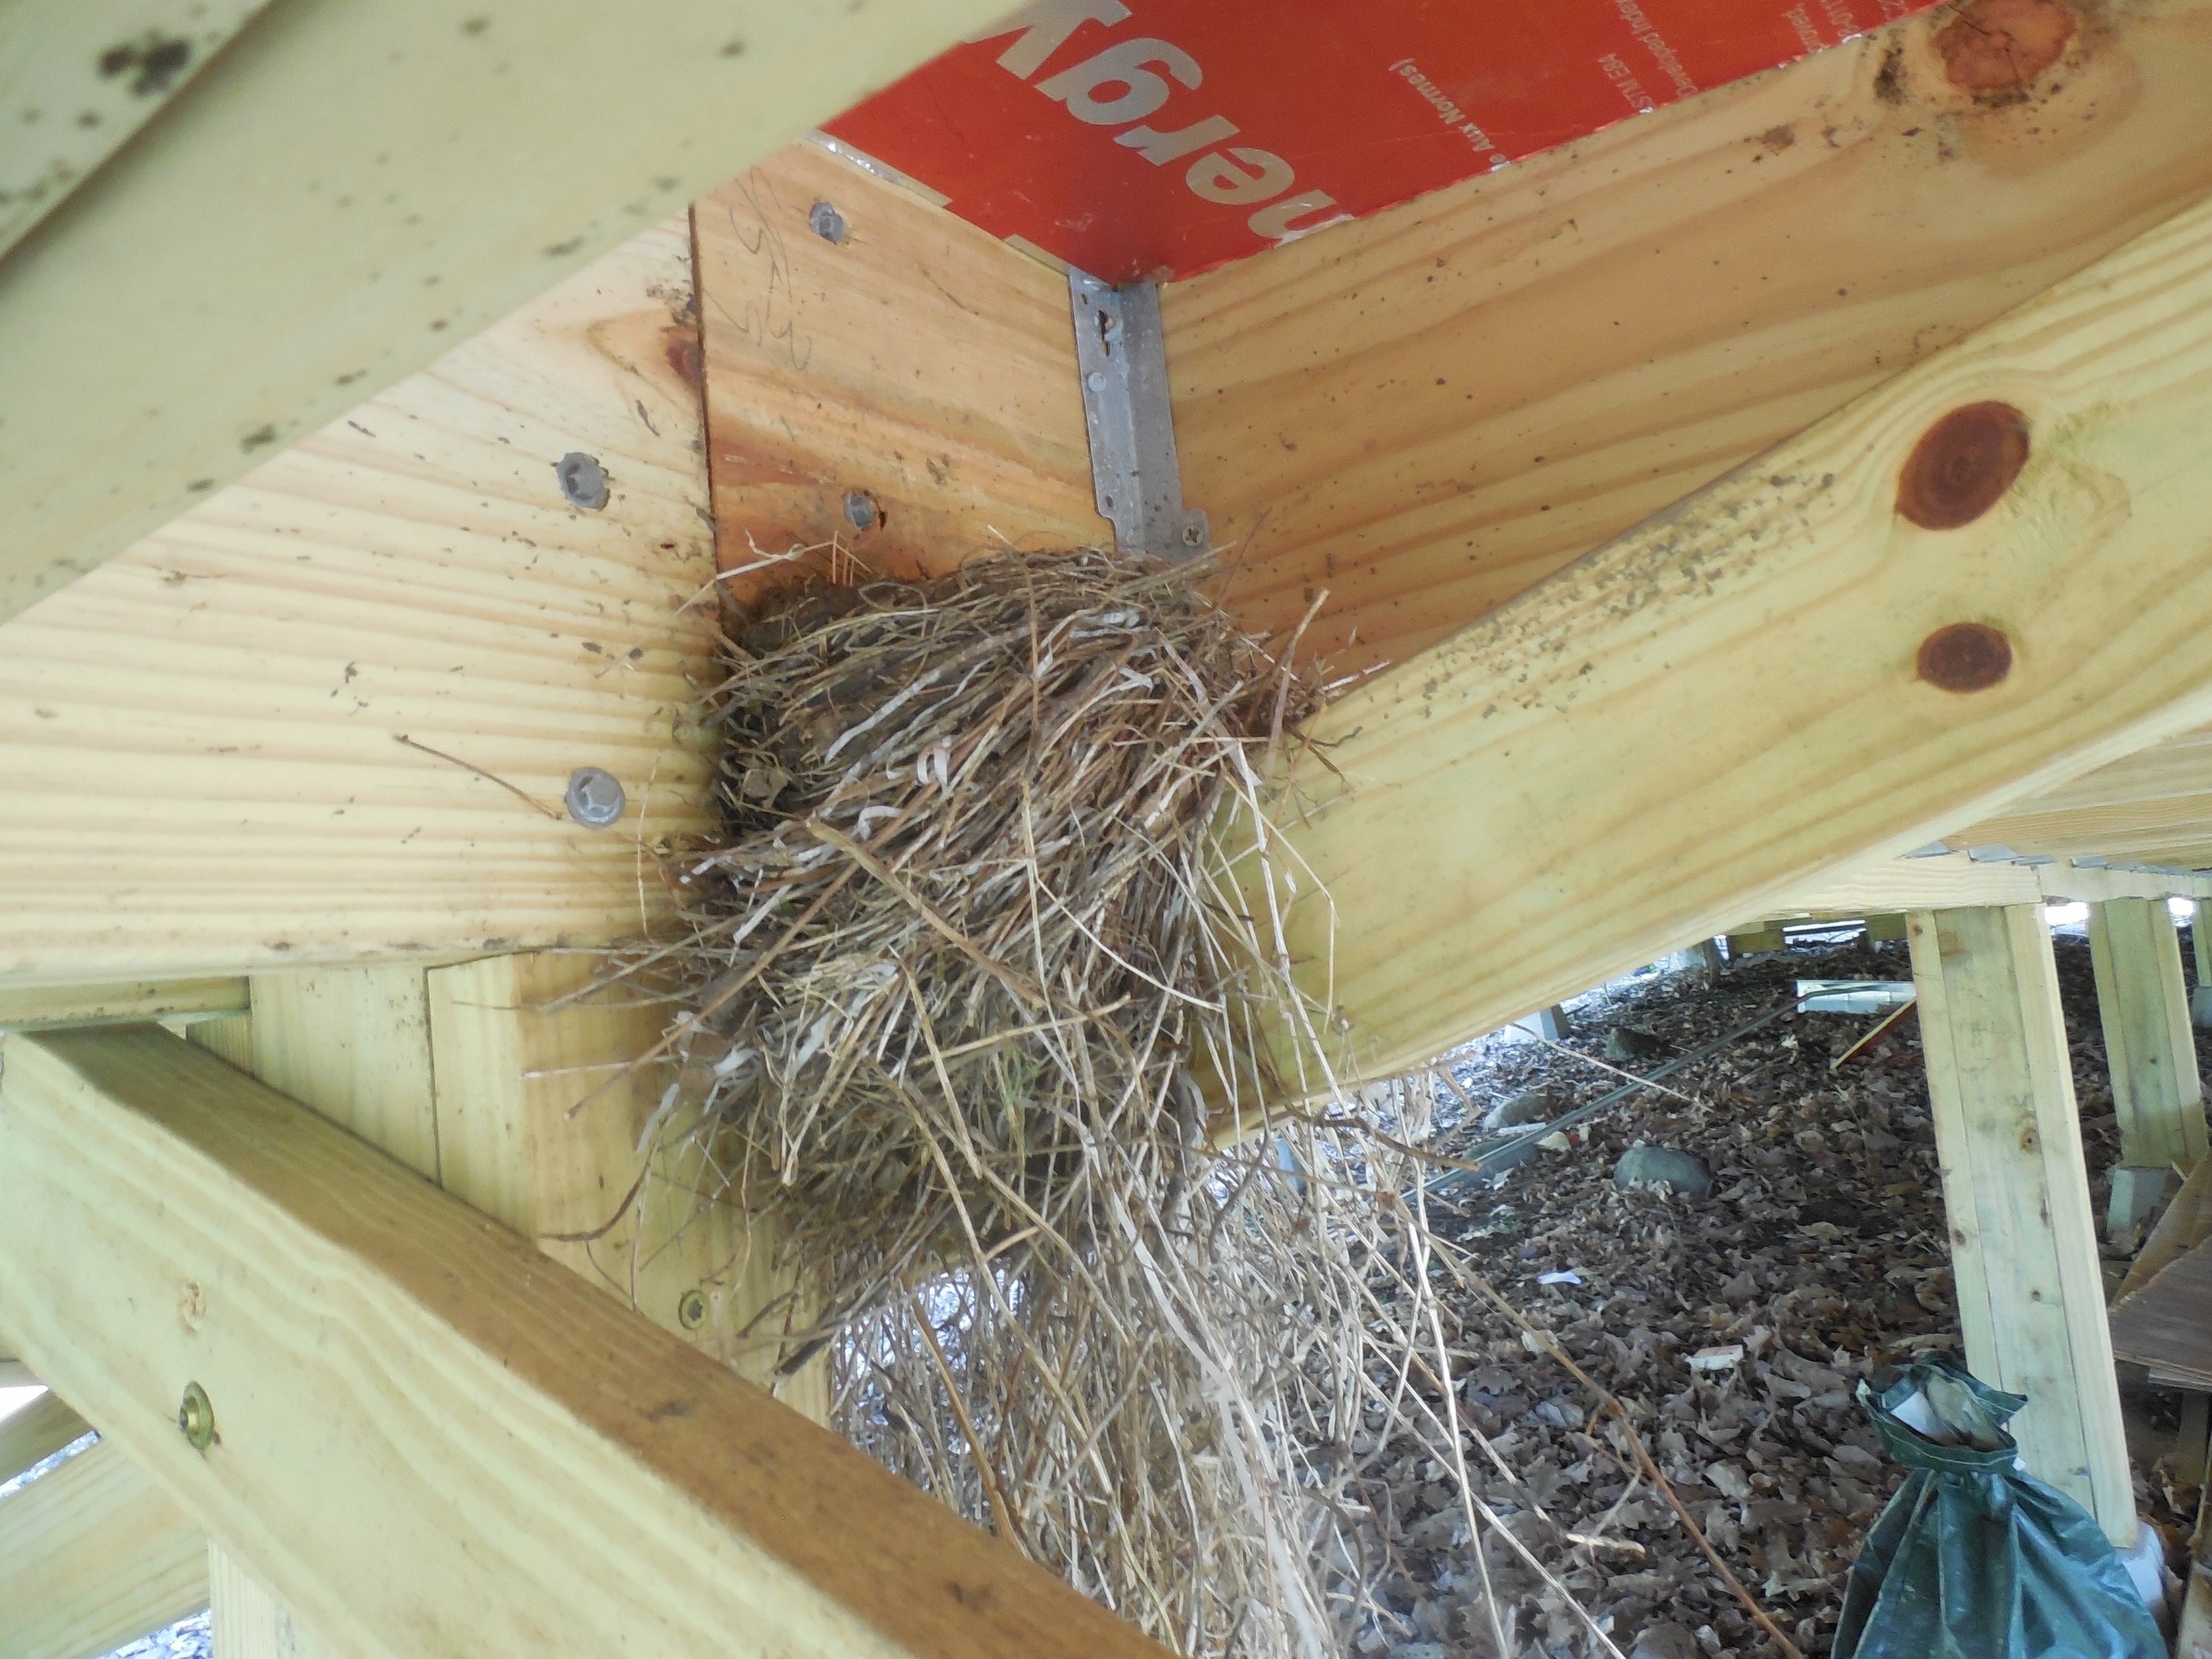 A robin's nest under the tent platform